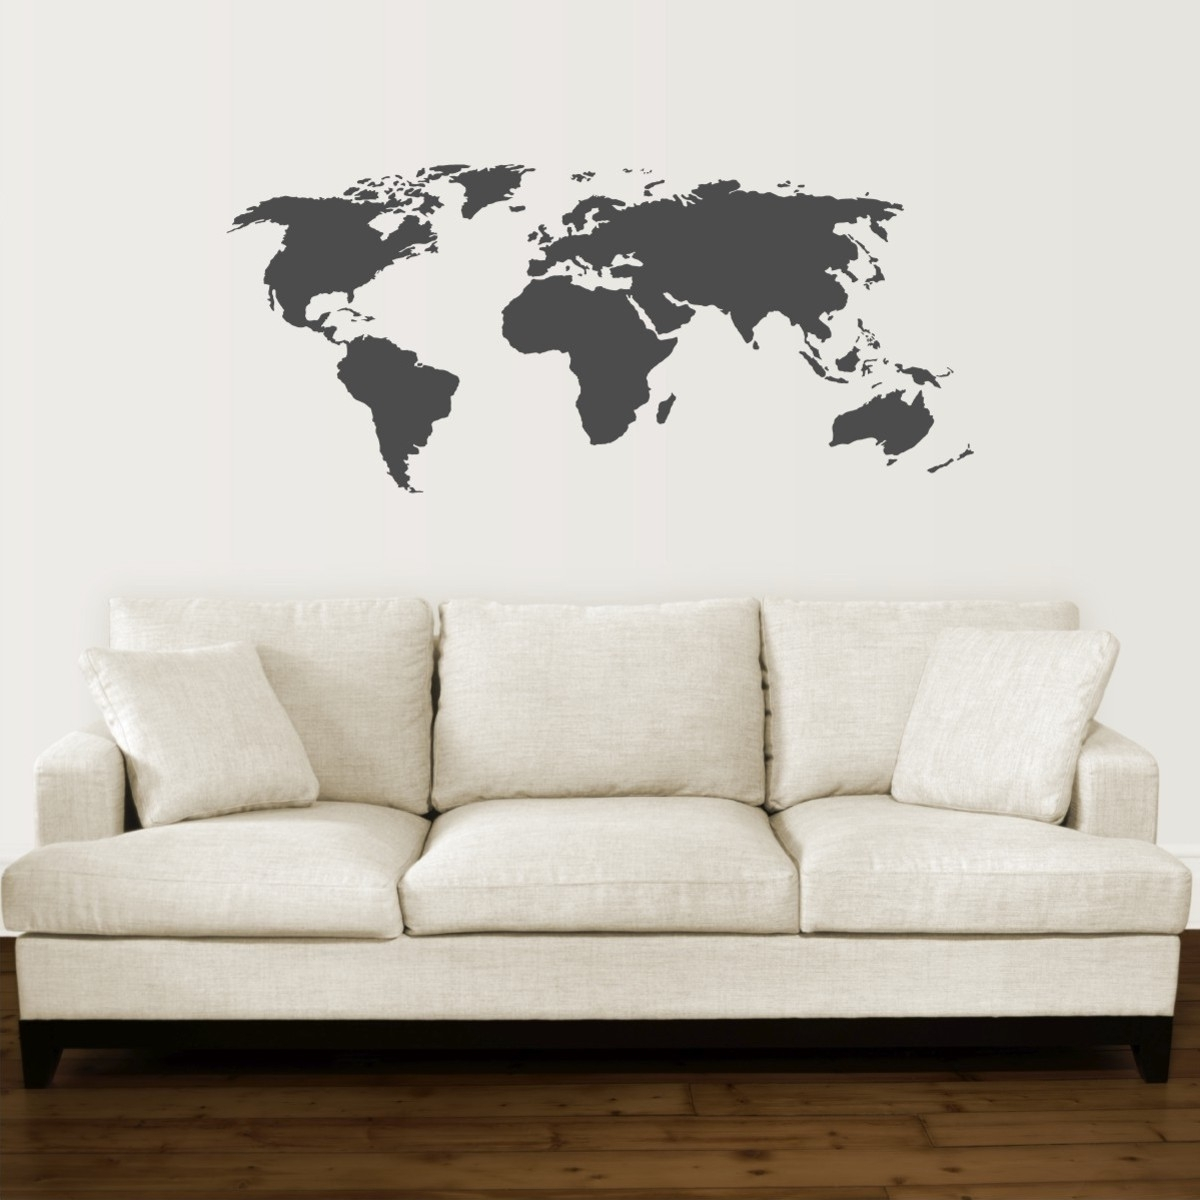 17 Cool Ideas For World Map Wall Art – Live Diy Ideas Pertaining To Newest Wall Art Map Of World (View 6 of 20)